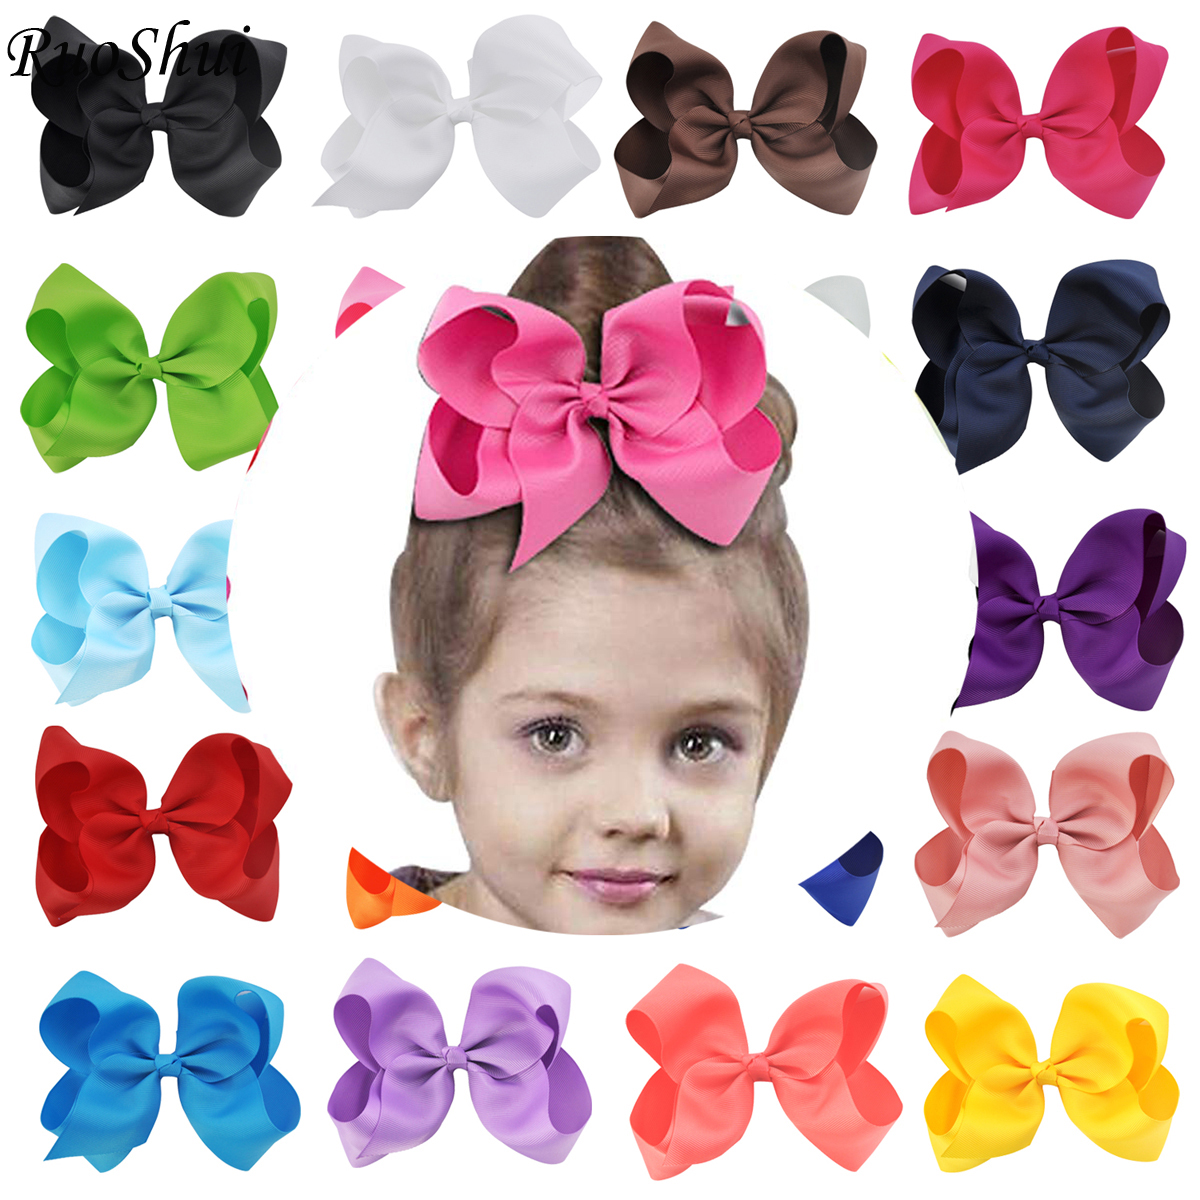 Honest Red Childrens Hair Clips Kids Bows Hair Accessories Girls' Accessories